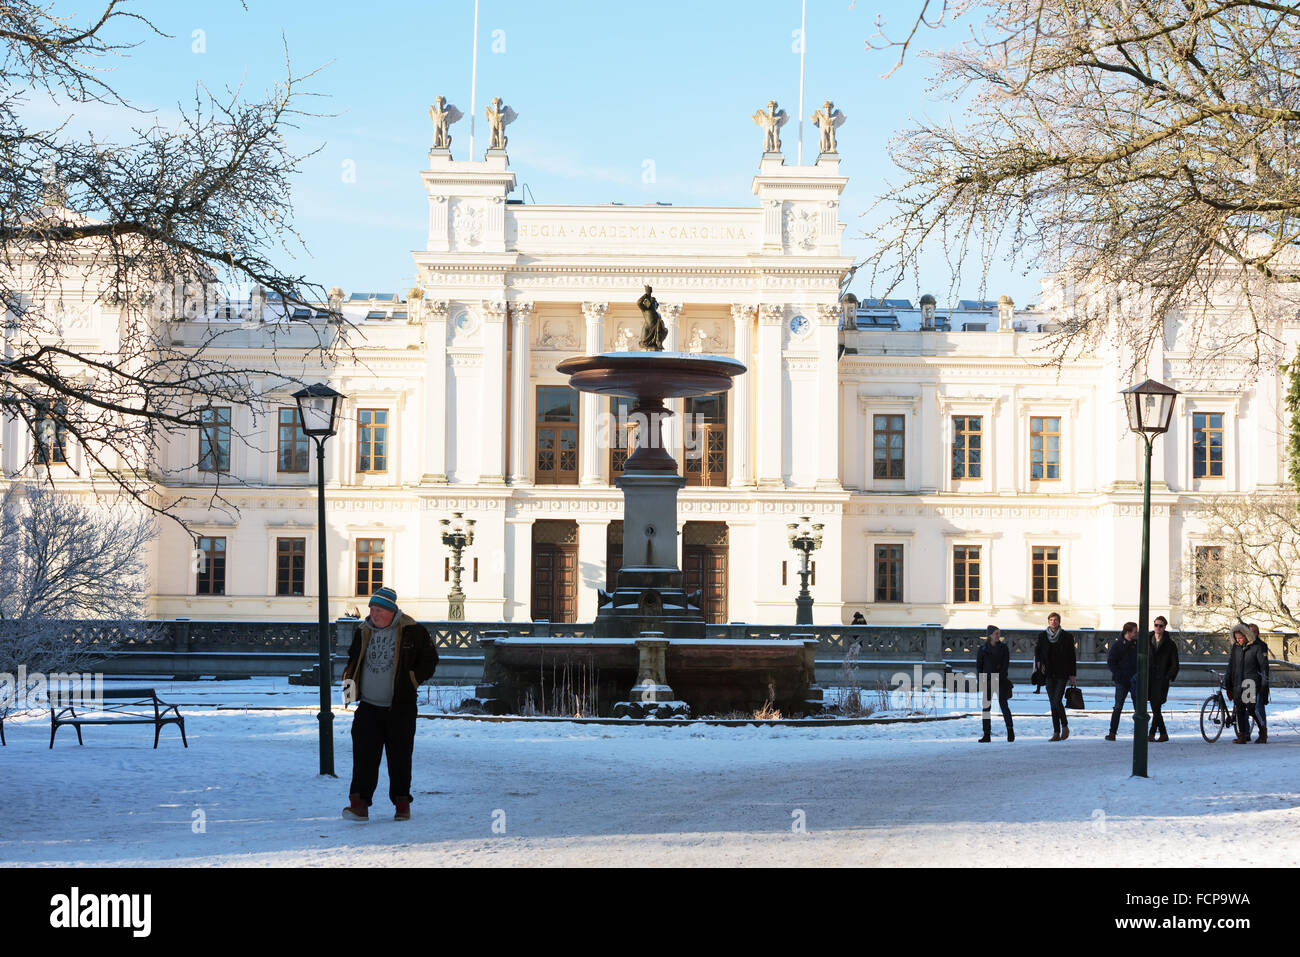 Lund, Sweden - January 21, 2016: Regia Academia Carolina is the original name of Lund university. This is the main - Stock Image